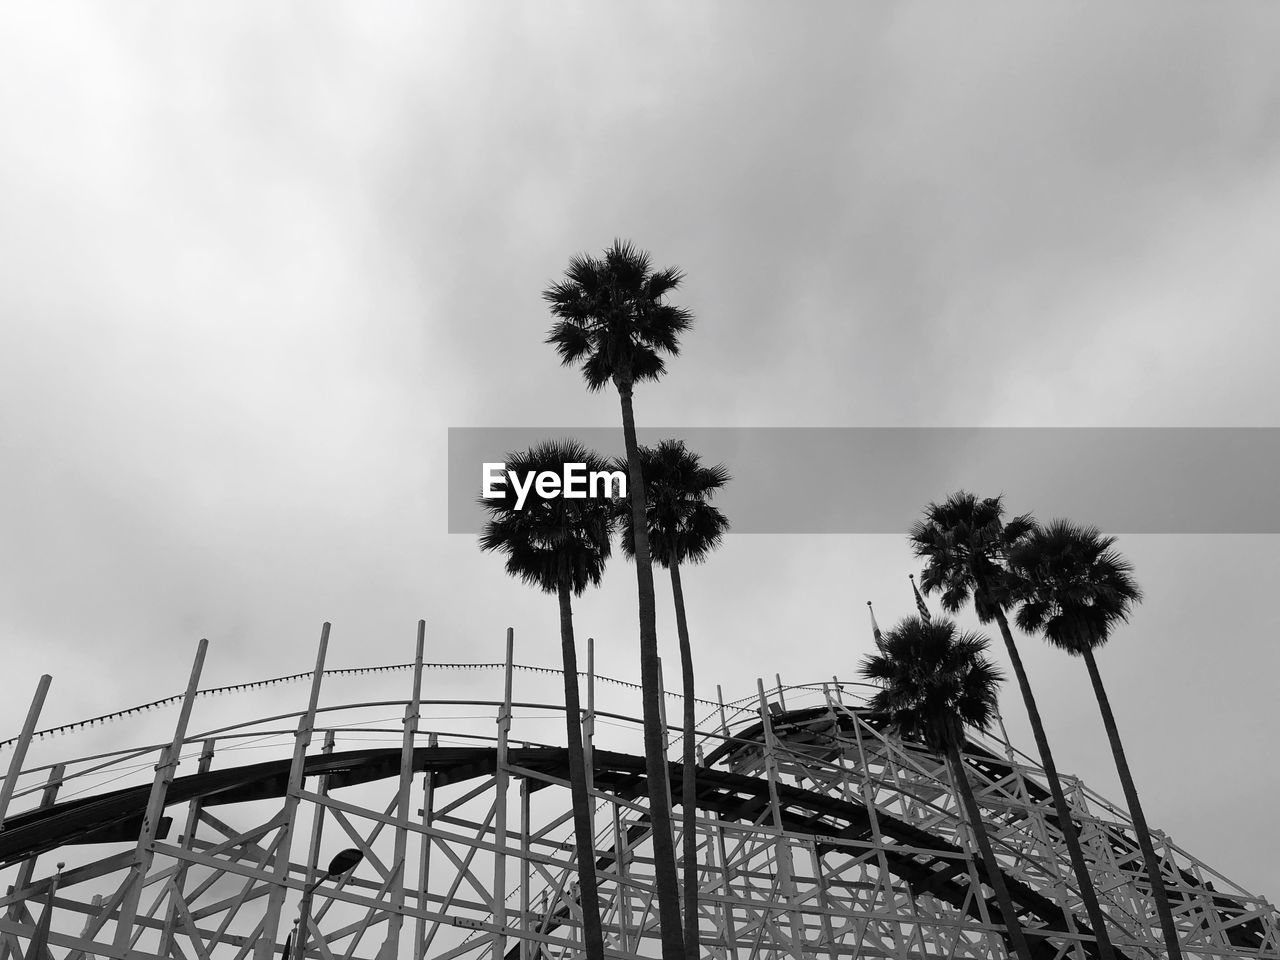 sky, low angle view, amusement park, cloud - sky, amusement park ride, palm tree, built structure, nature, architecture, arts culture and entertainment, tropical climate, day, no people, tree, outdoors, ferris wheel, tall - high, plant, rollercoaster, dusk, fairground